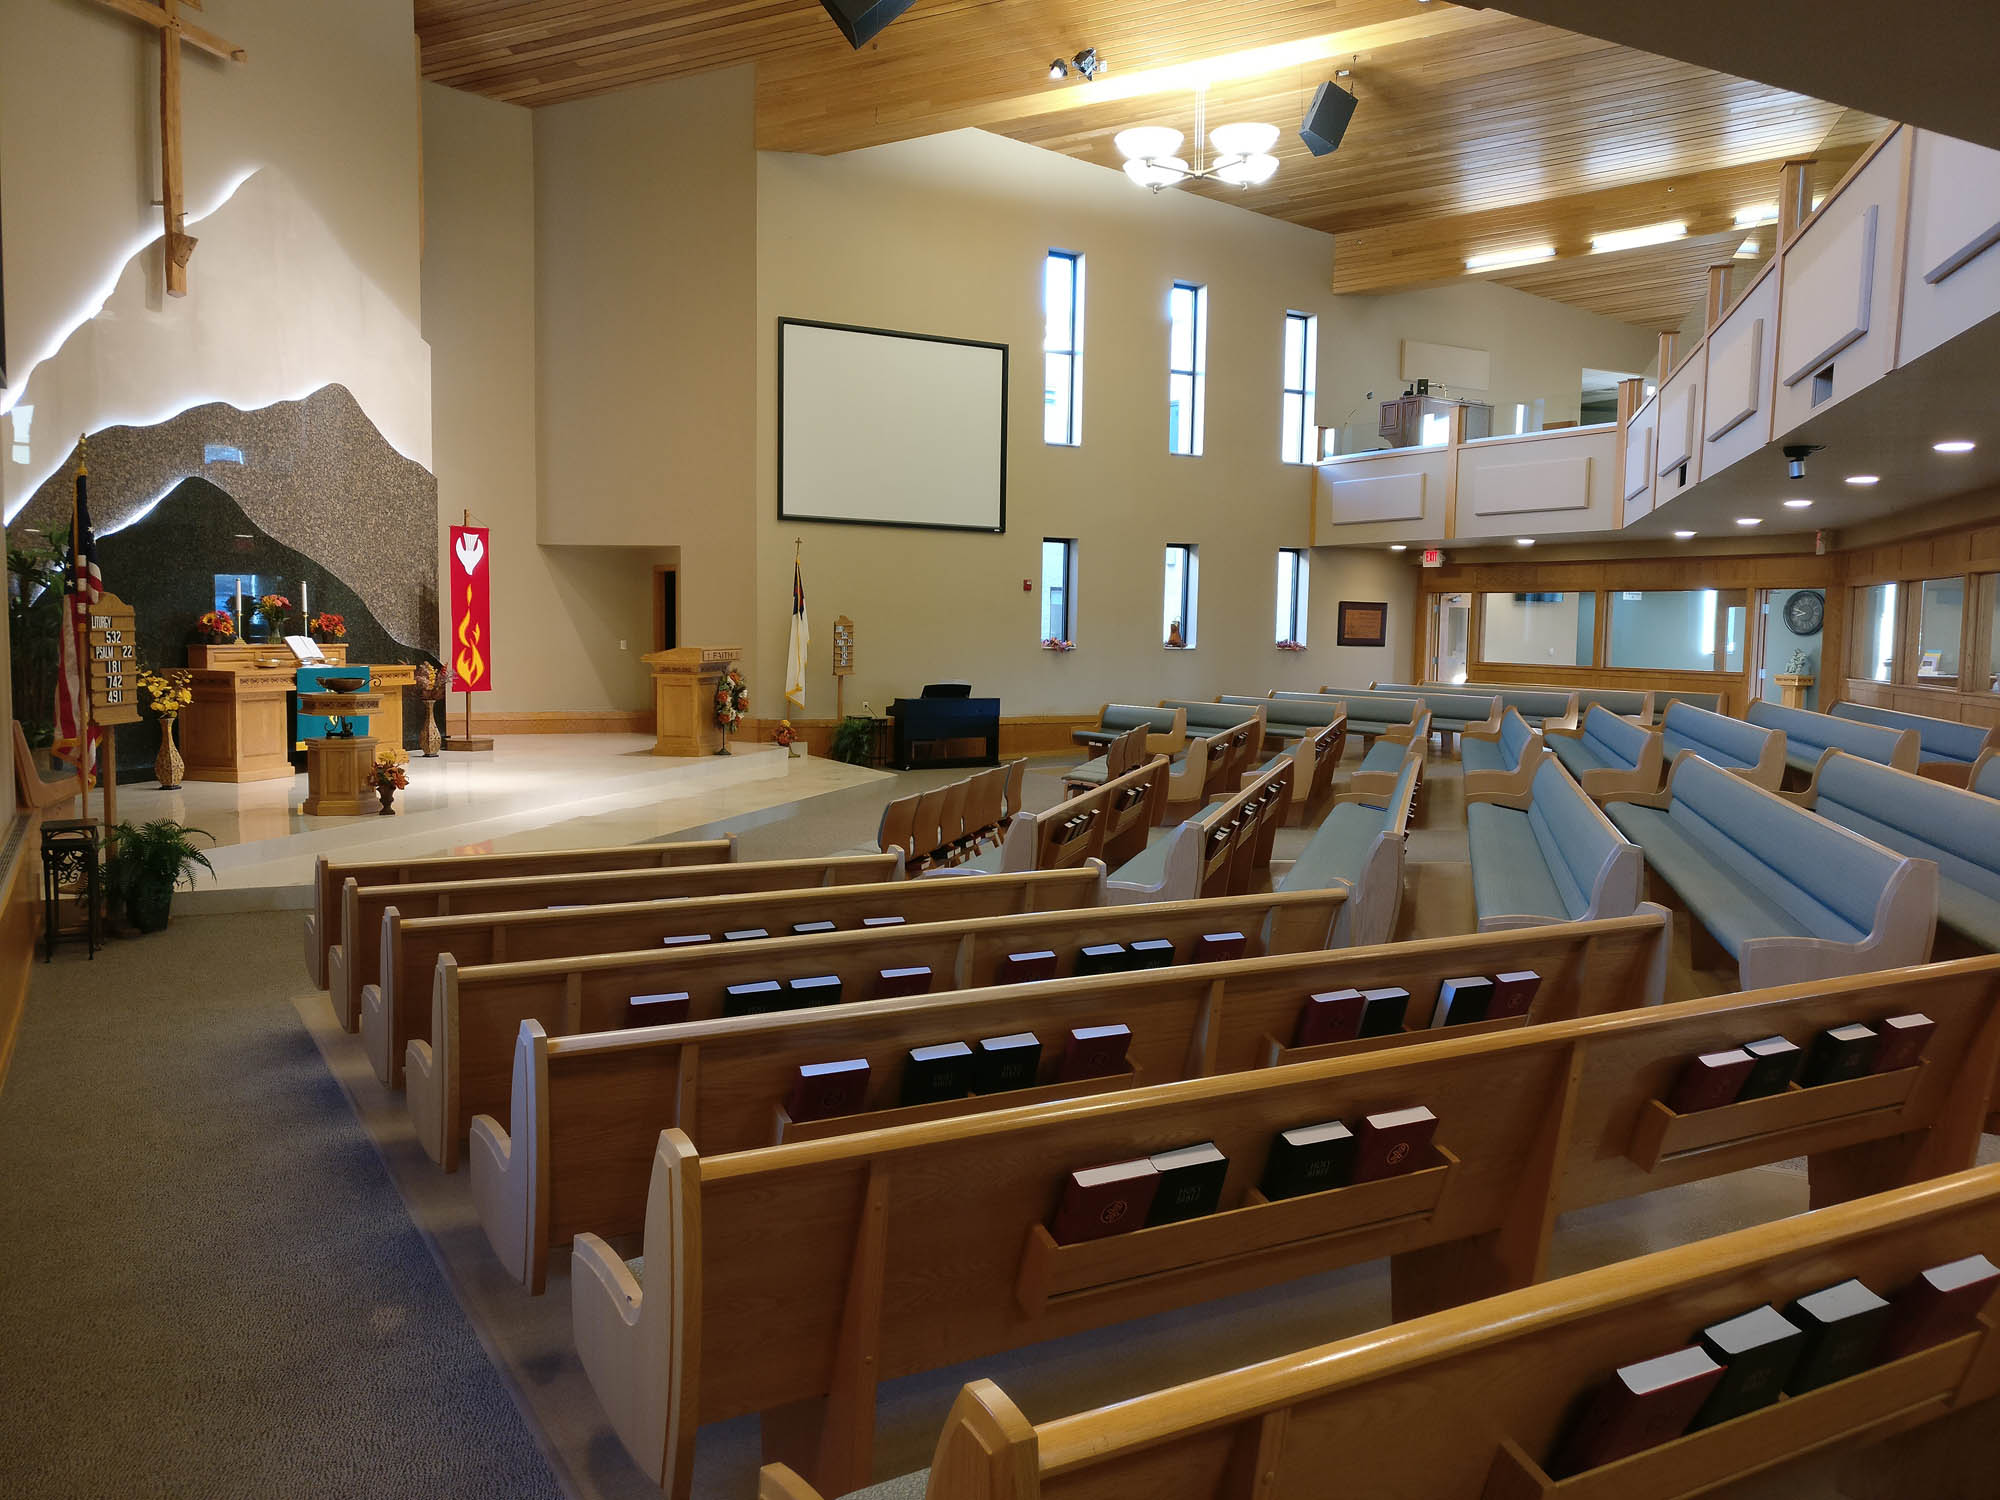 Faith-front-and pews.jpg